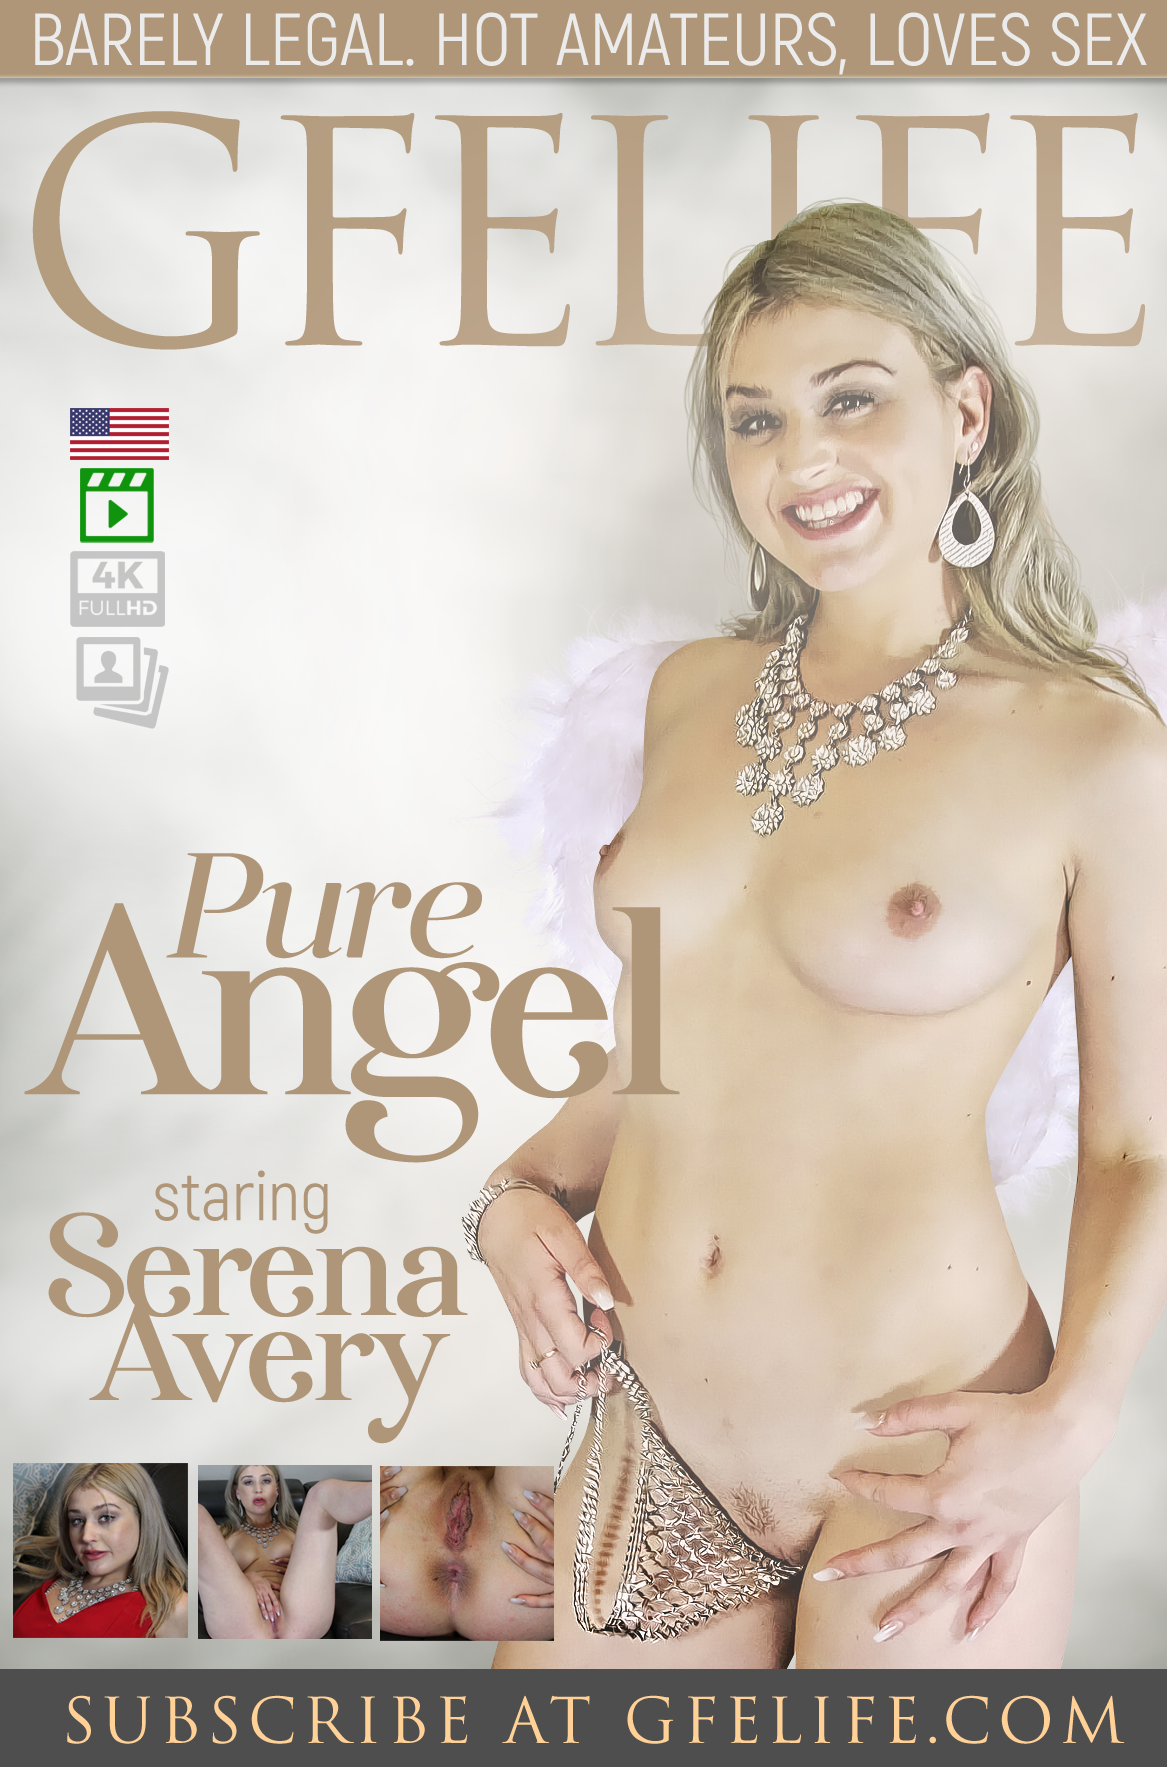 Serena Avery – Angel has wings